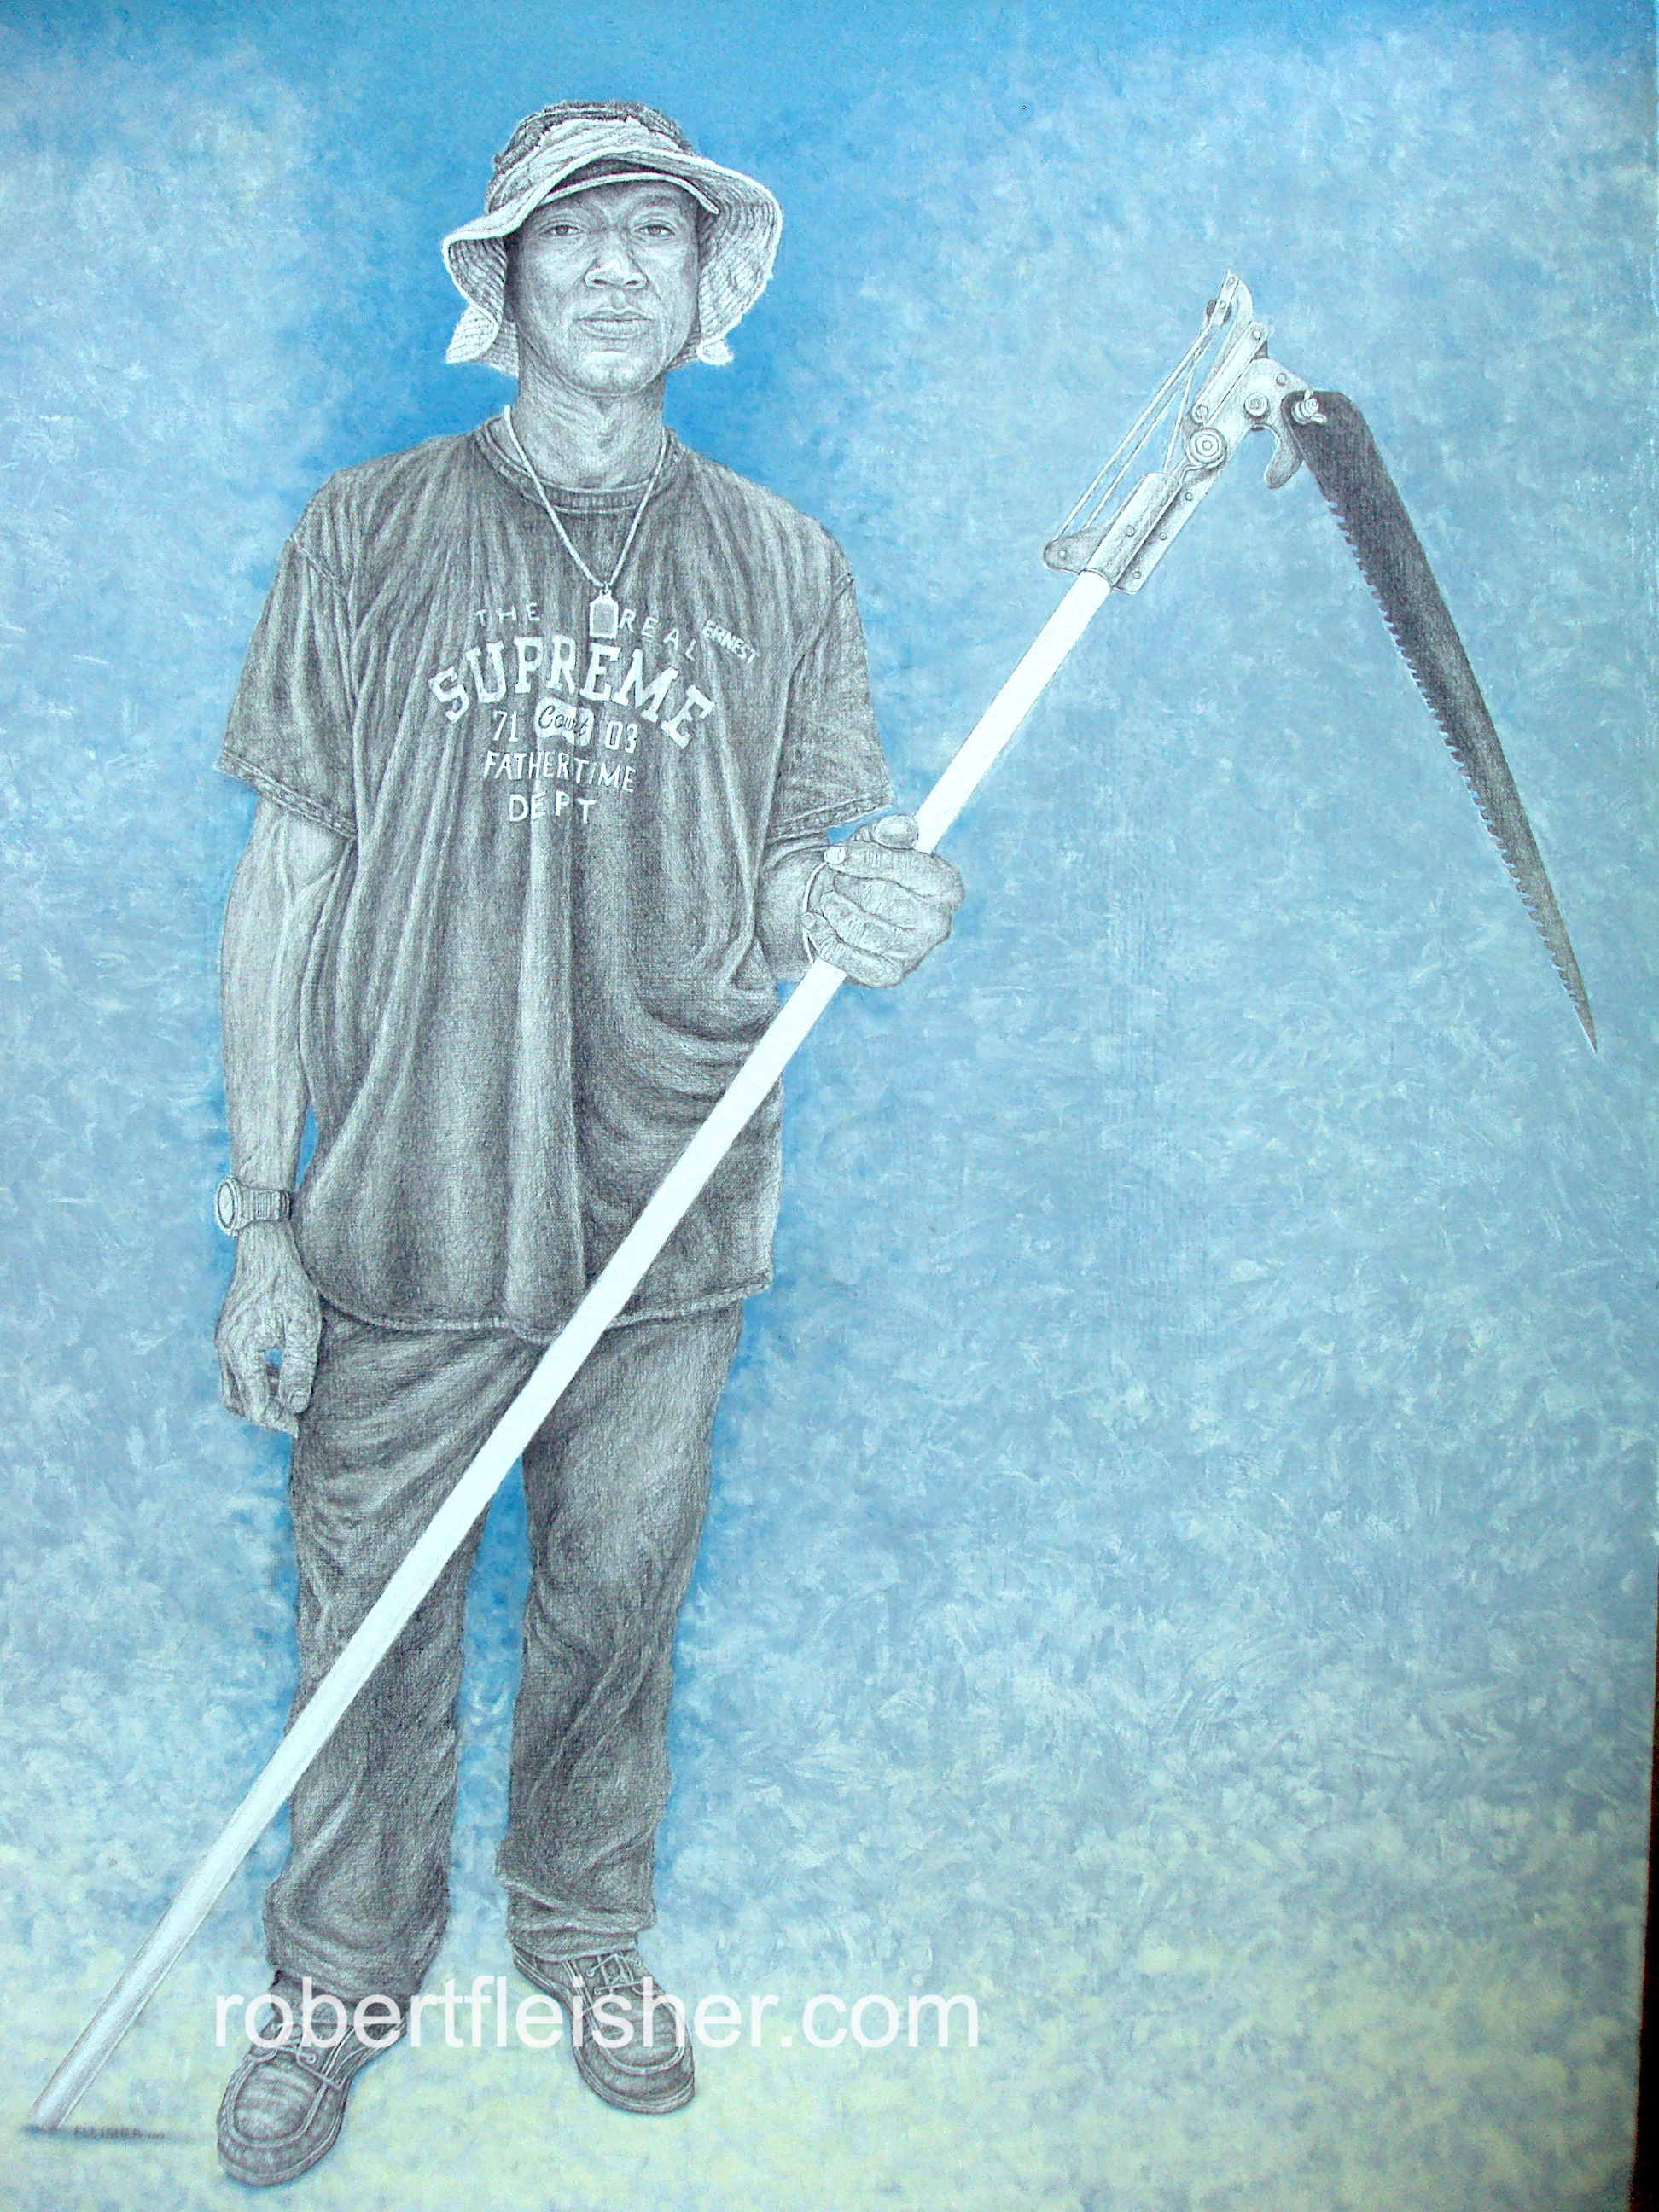 Fathertime, The Real Supreme Court   2013  40x30  Graphite/oil on canvas